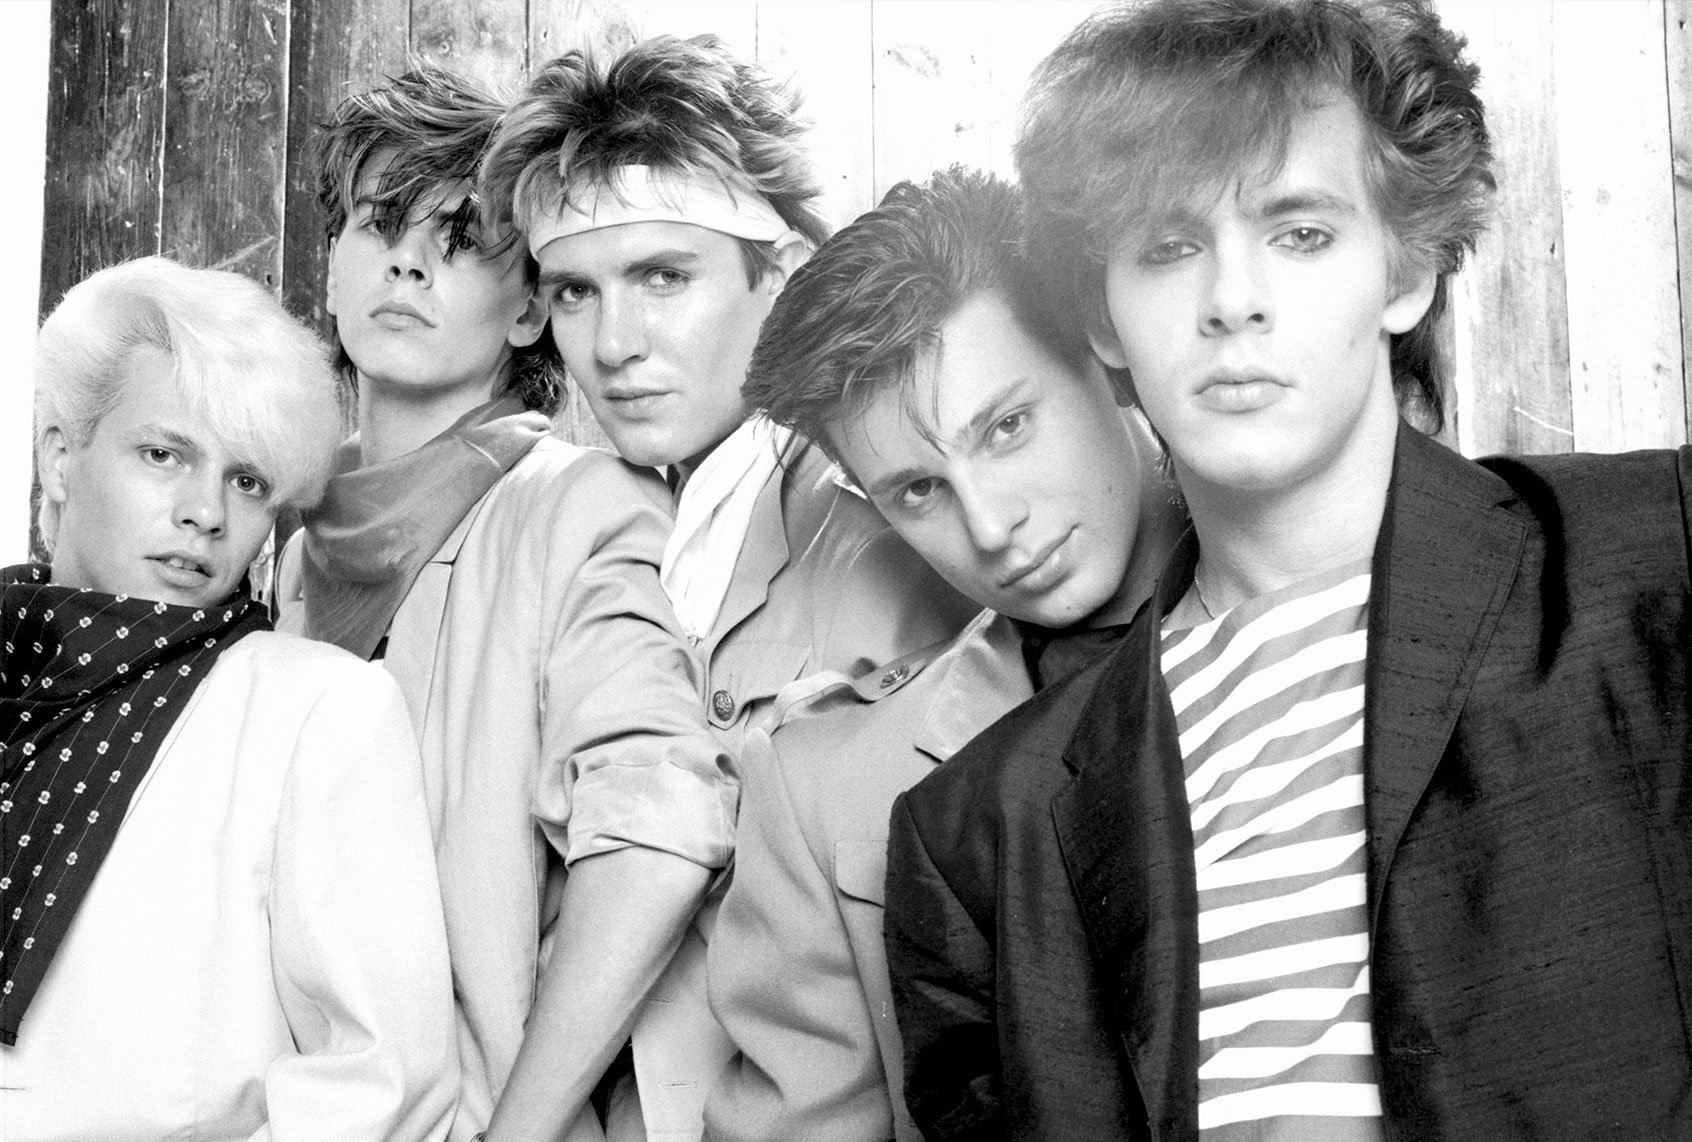 """""""Planet Earth"""" at 40: The perfect debut single that boldly launched Duran Duran"""